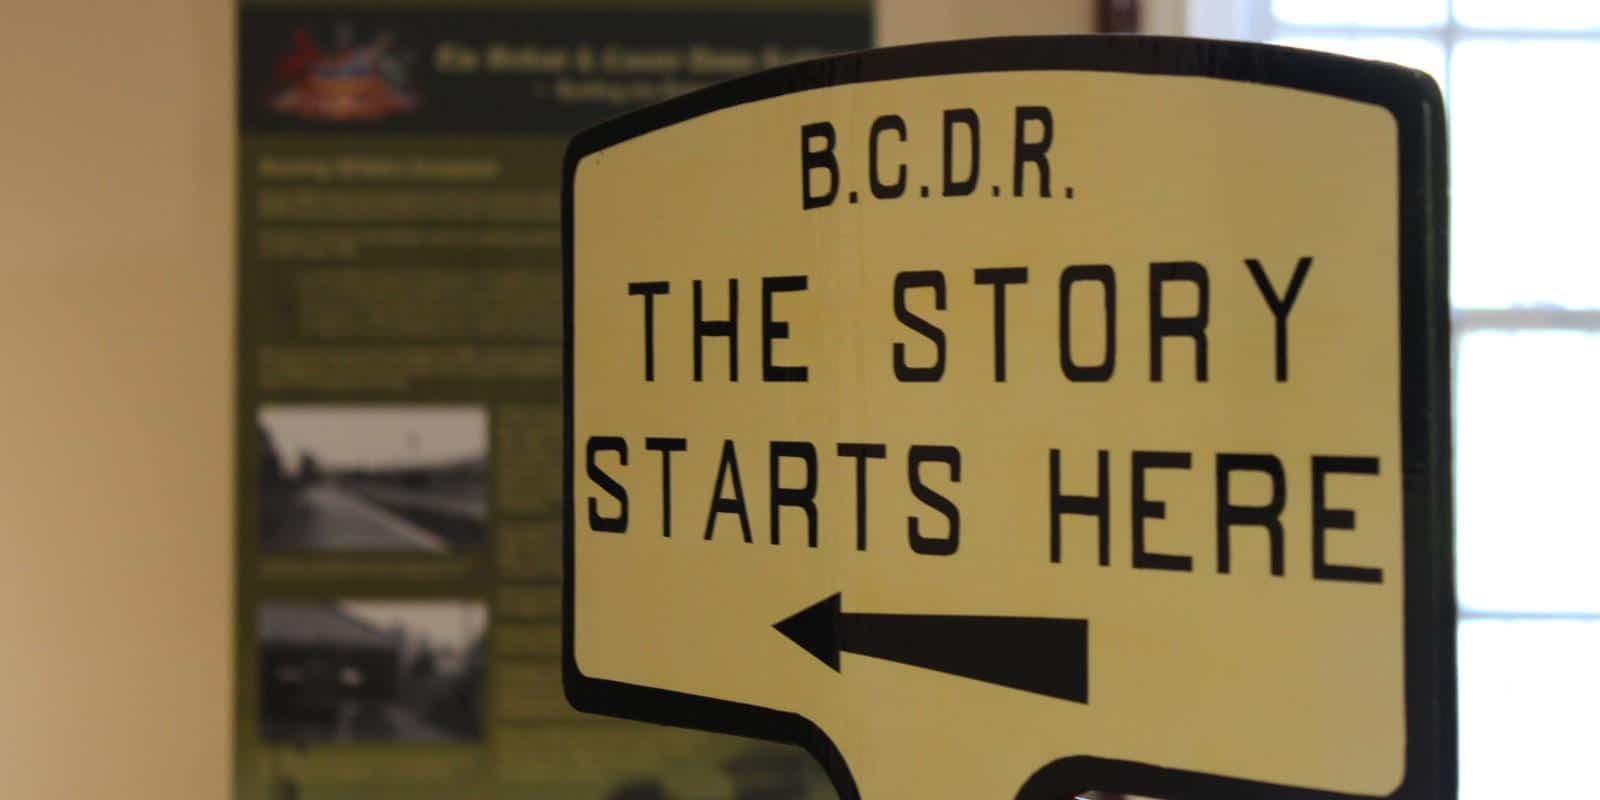 Follow the signs for a journey through the history of railways in County Down